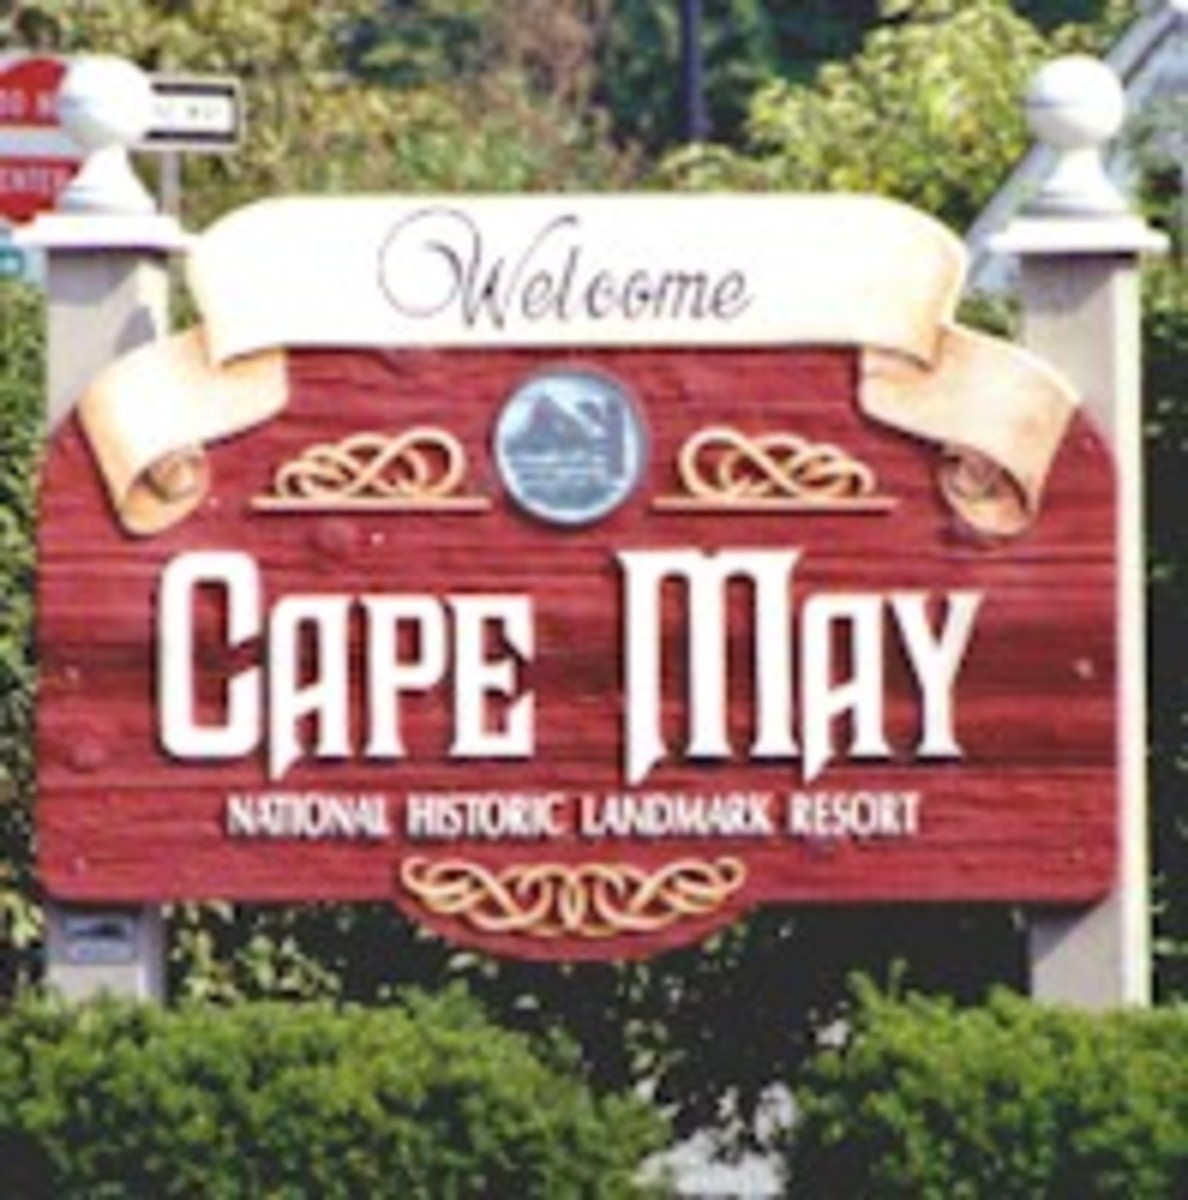 Welcome Sign - Cape May, NJ